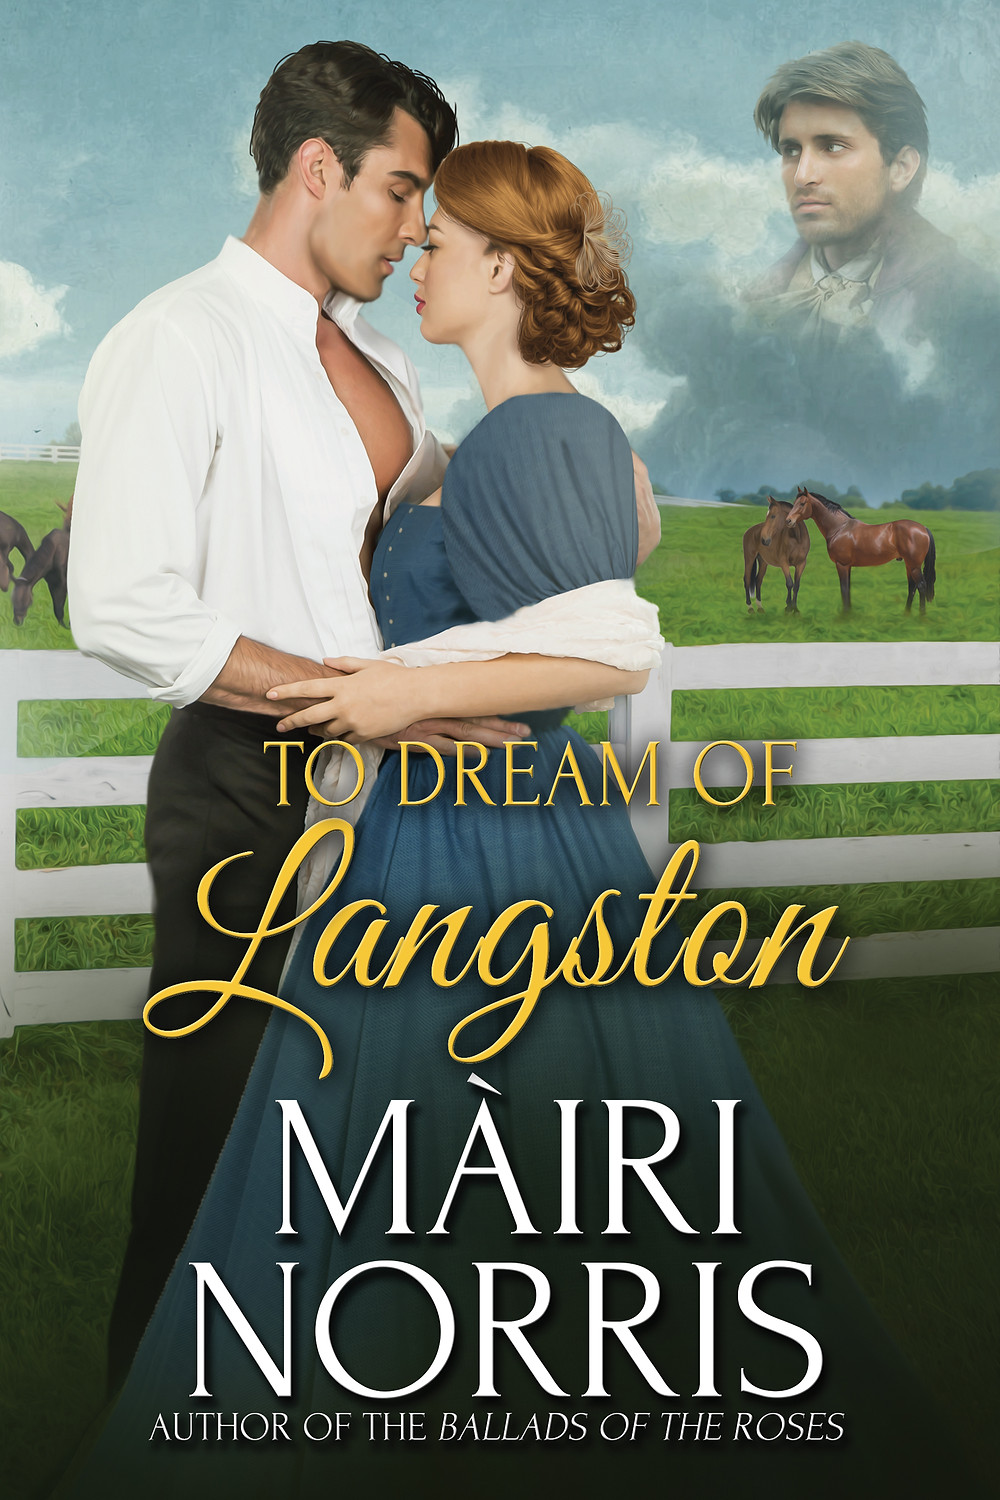 TO DREAM OF LANGSTON by Màiri Norris